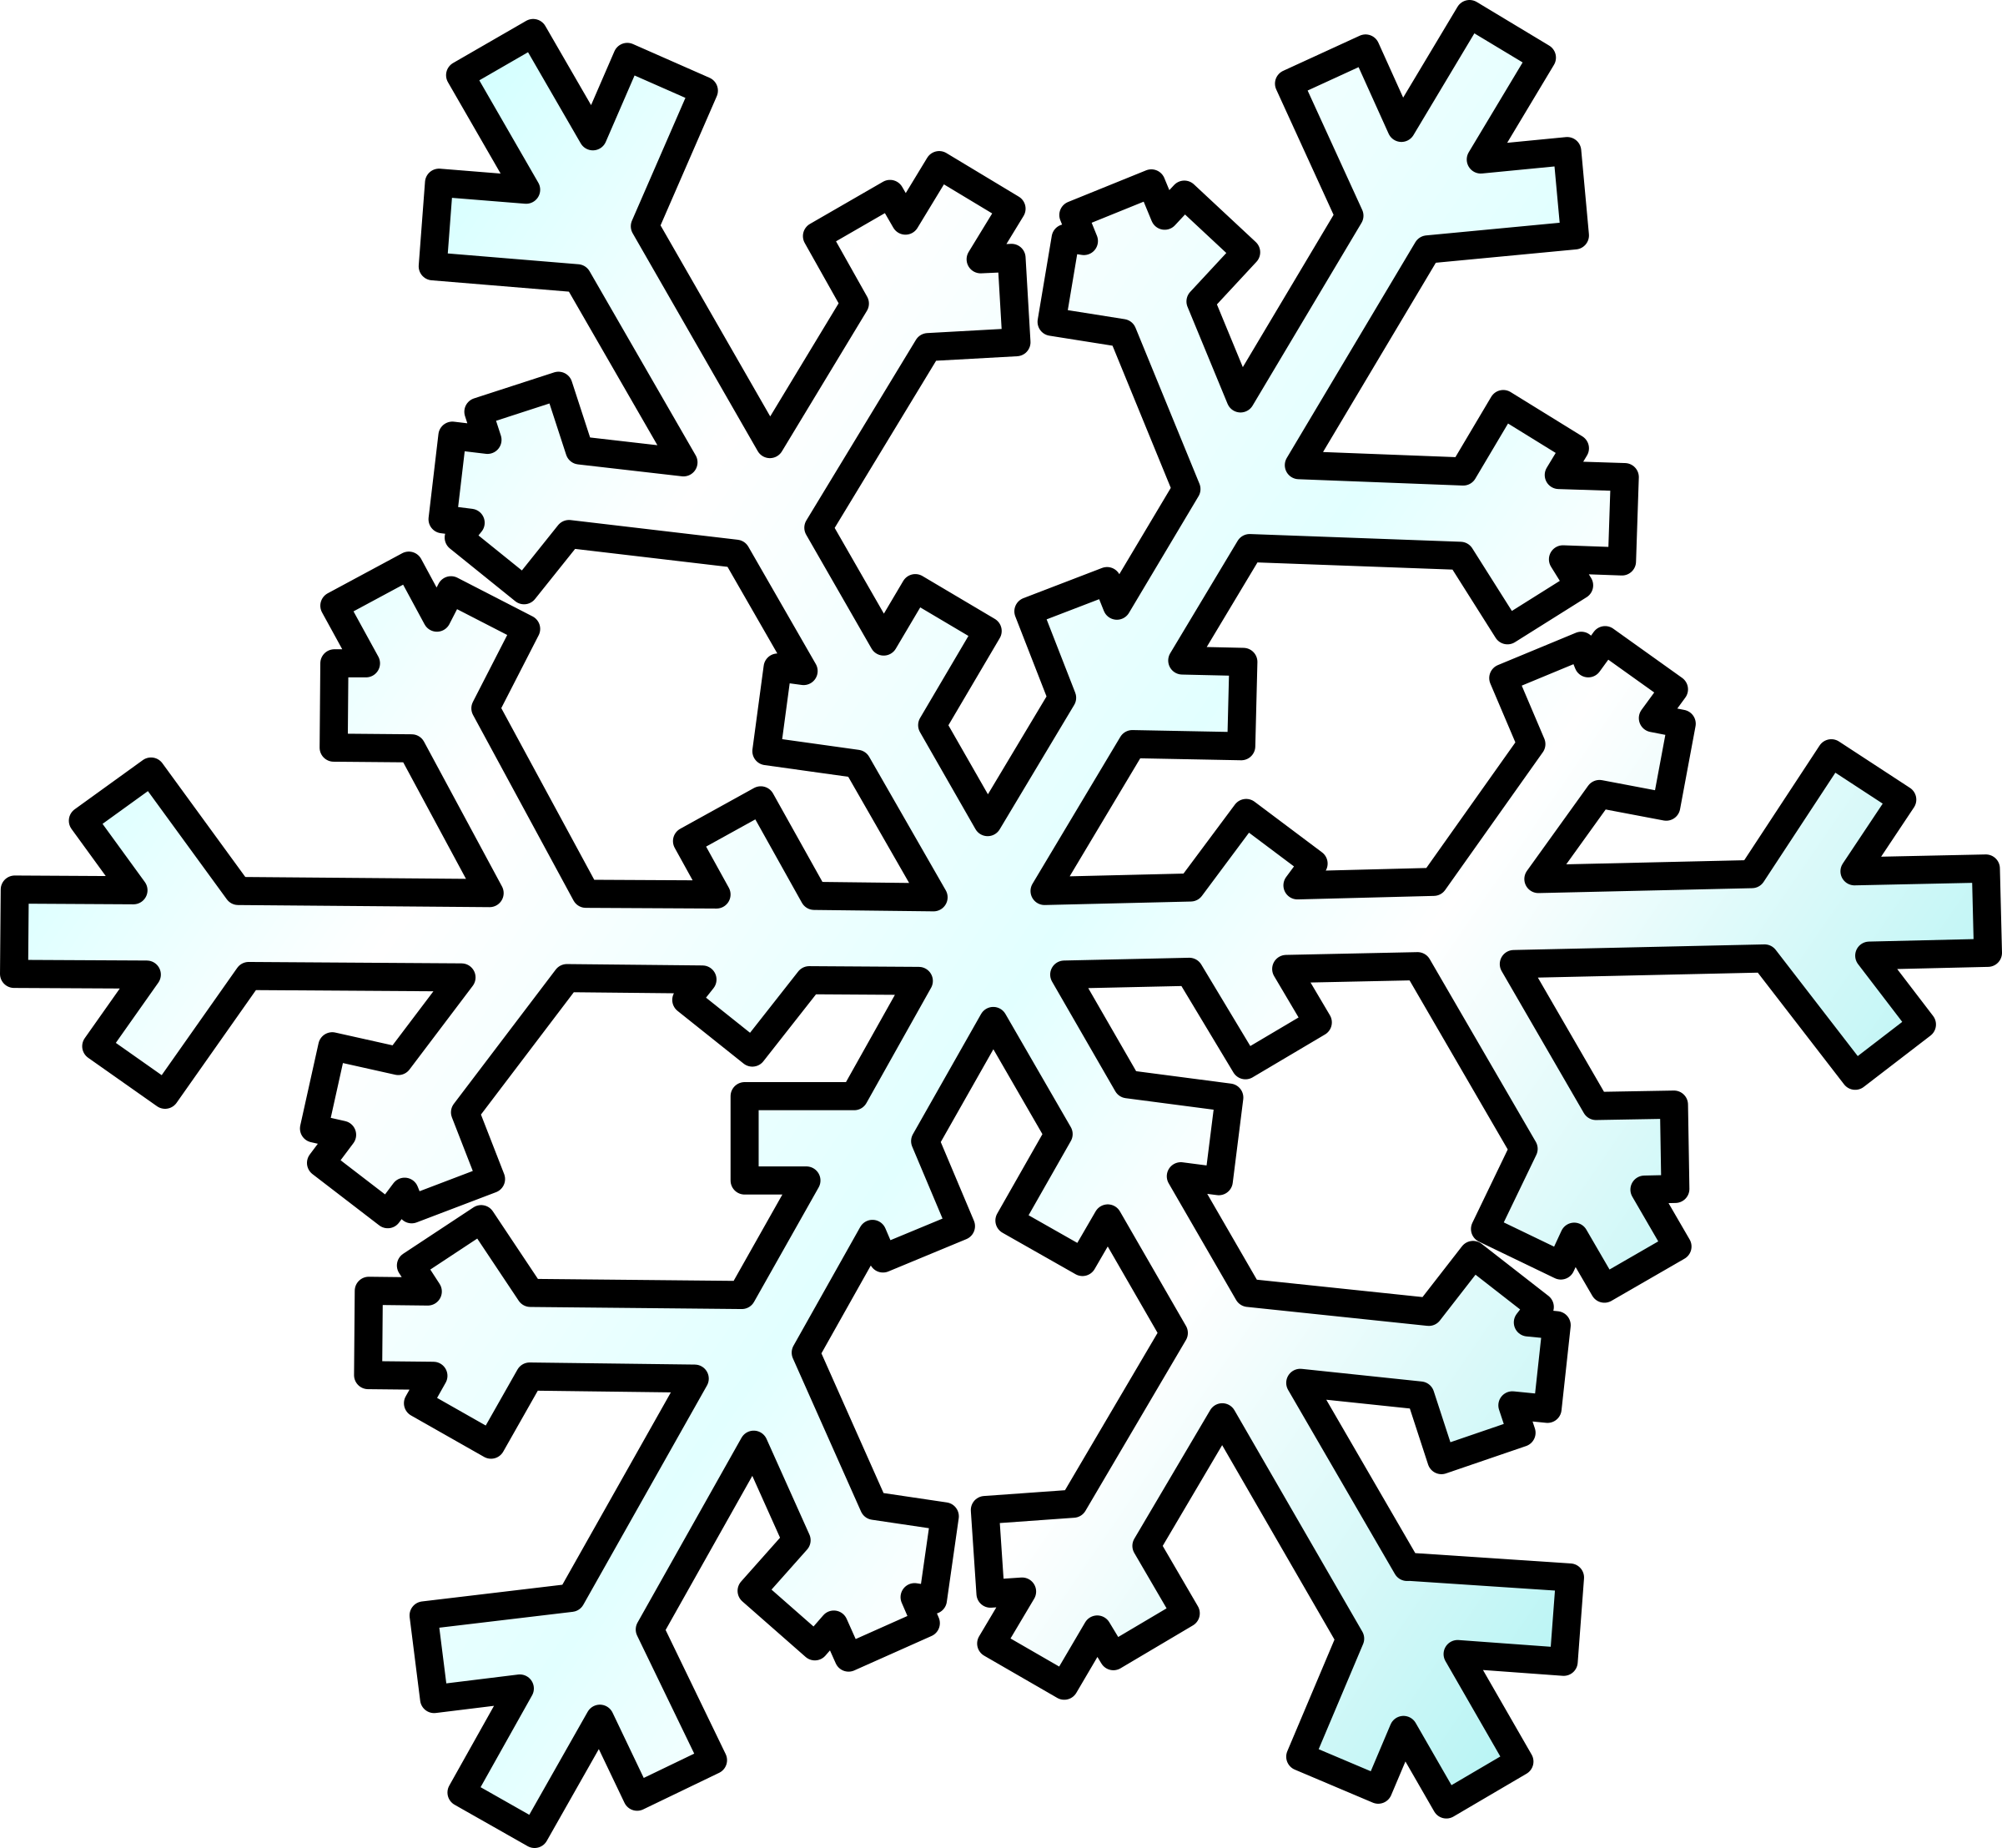 Snow clipart. Weather symbols big image